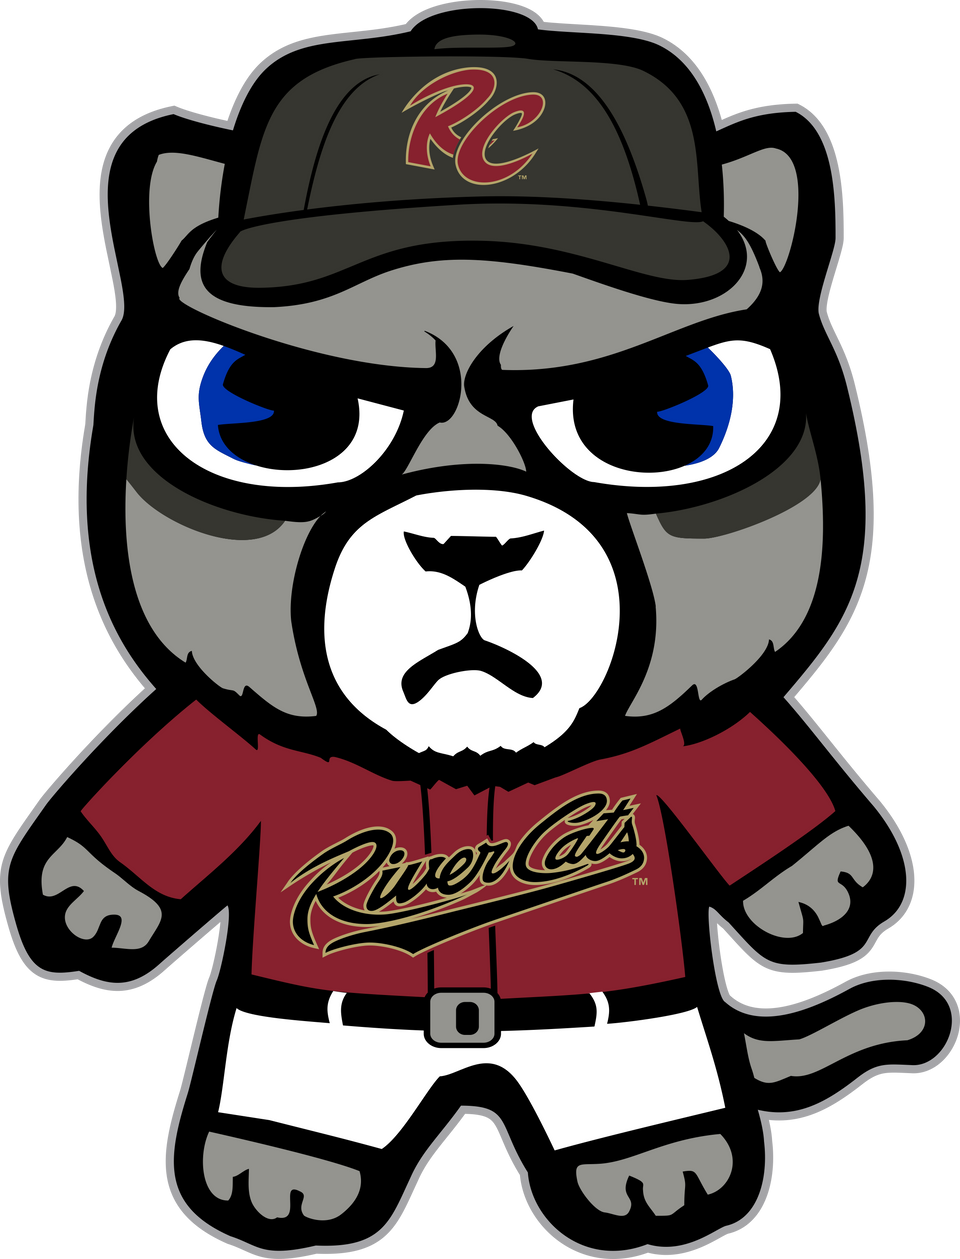 collections/Sacramento_River_Cats.png